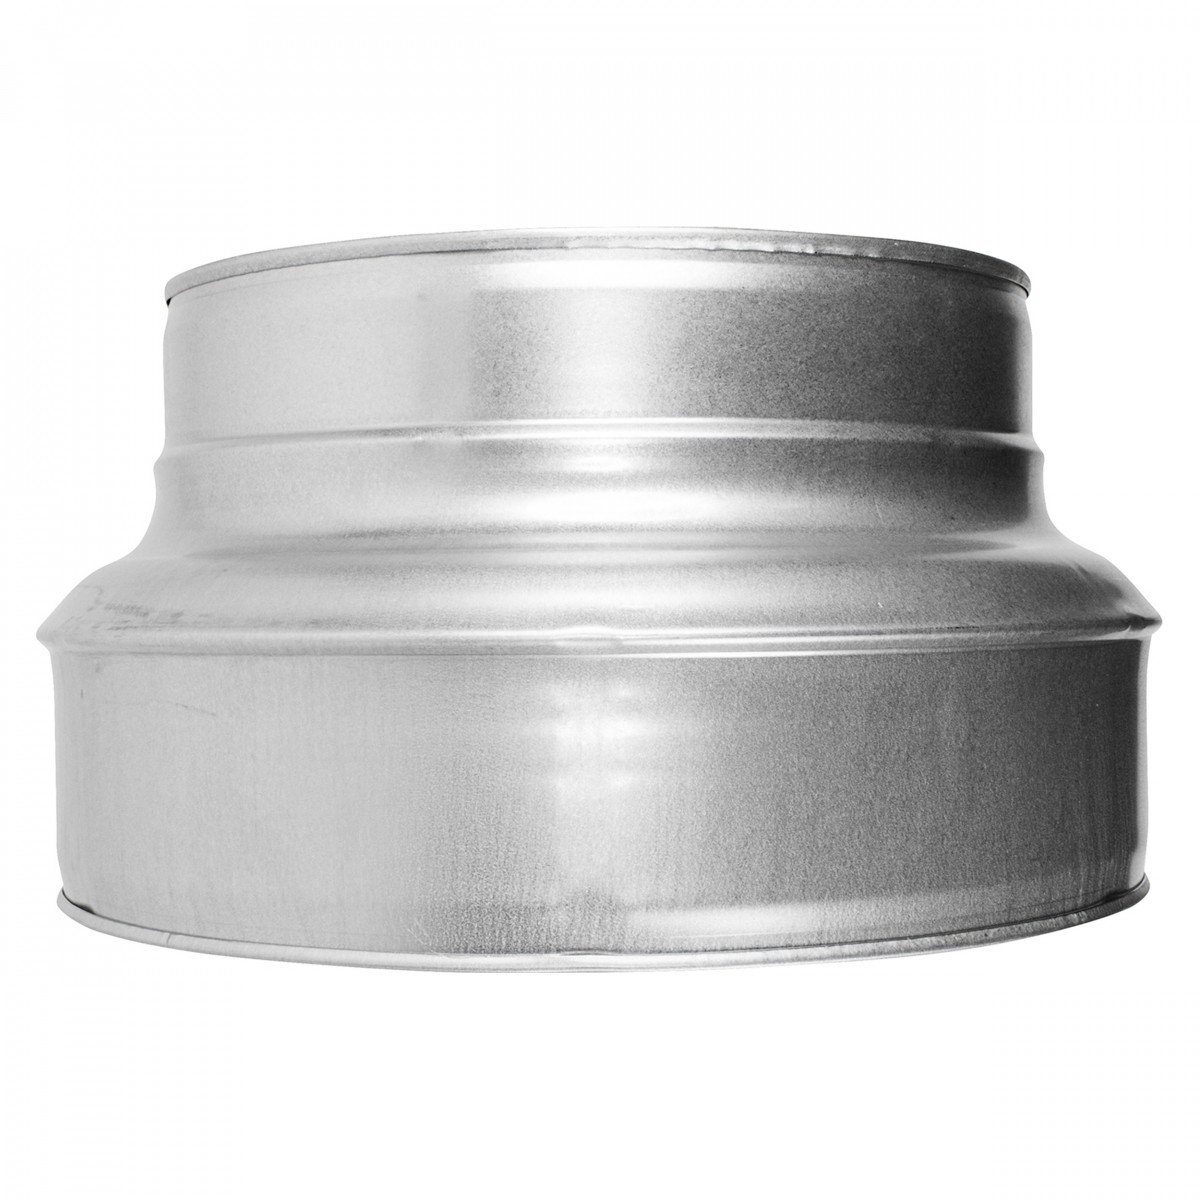 Ducting Reducer 250mm /> 200mm